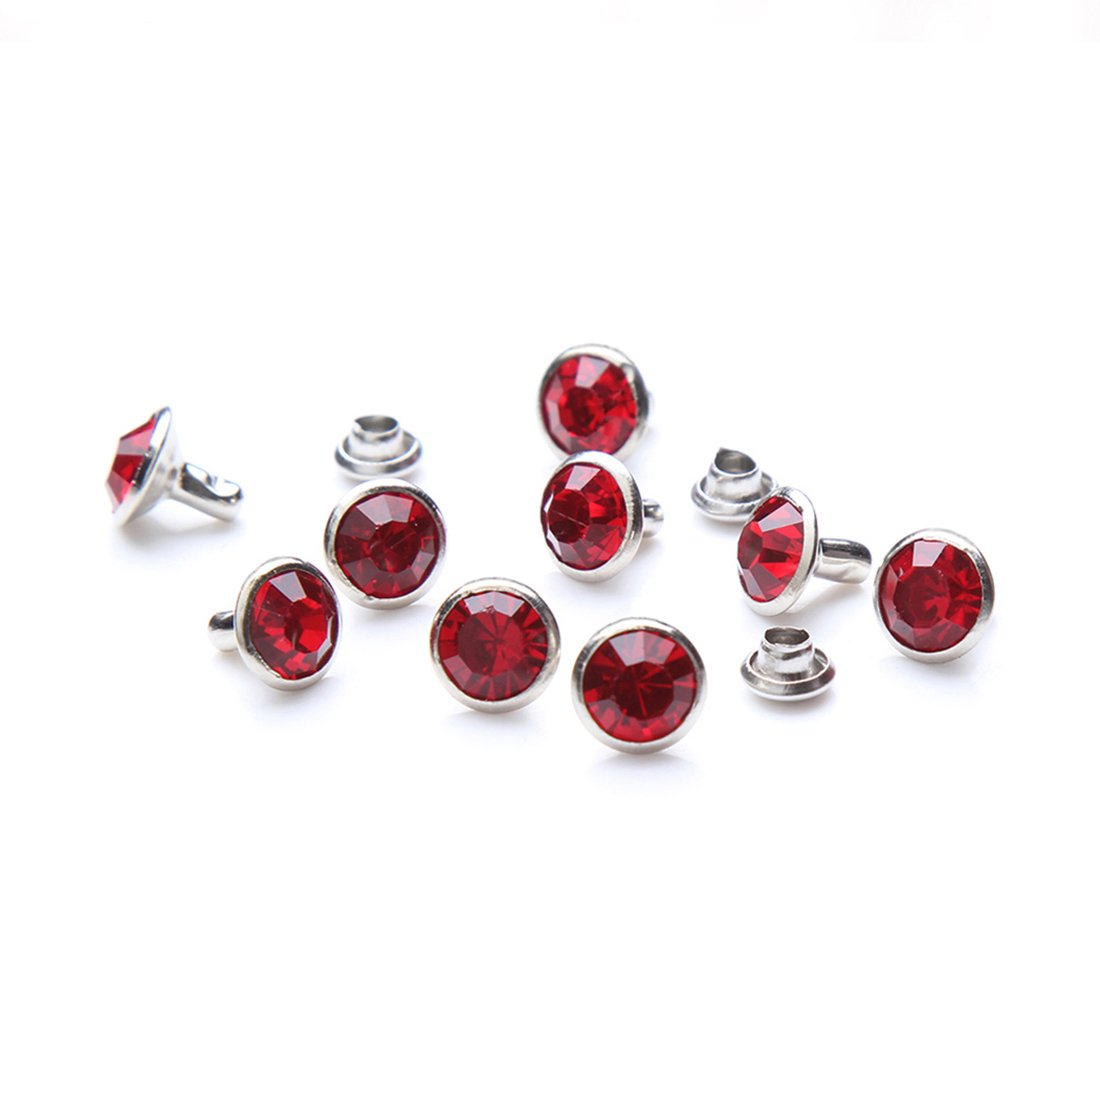 100 Sets Cz Colorful Crystal Rapid Rivets Silver Color Spots Studs Double Cap for DIY Leather-Craft (Hot Pink, 6MM) DasGarden A-RVTS1001